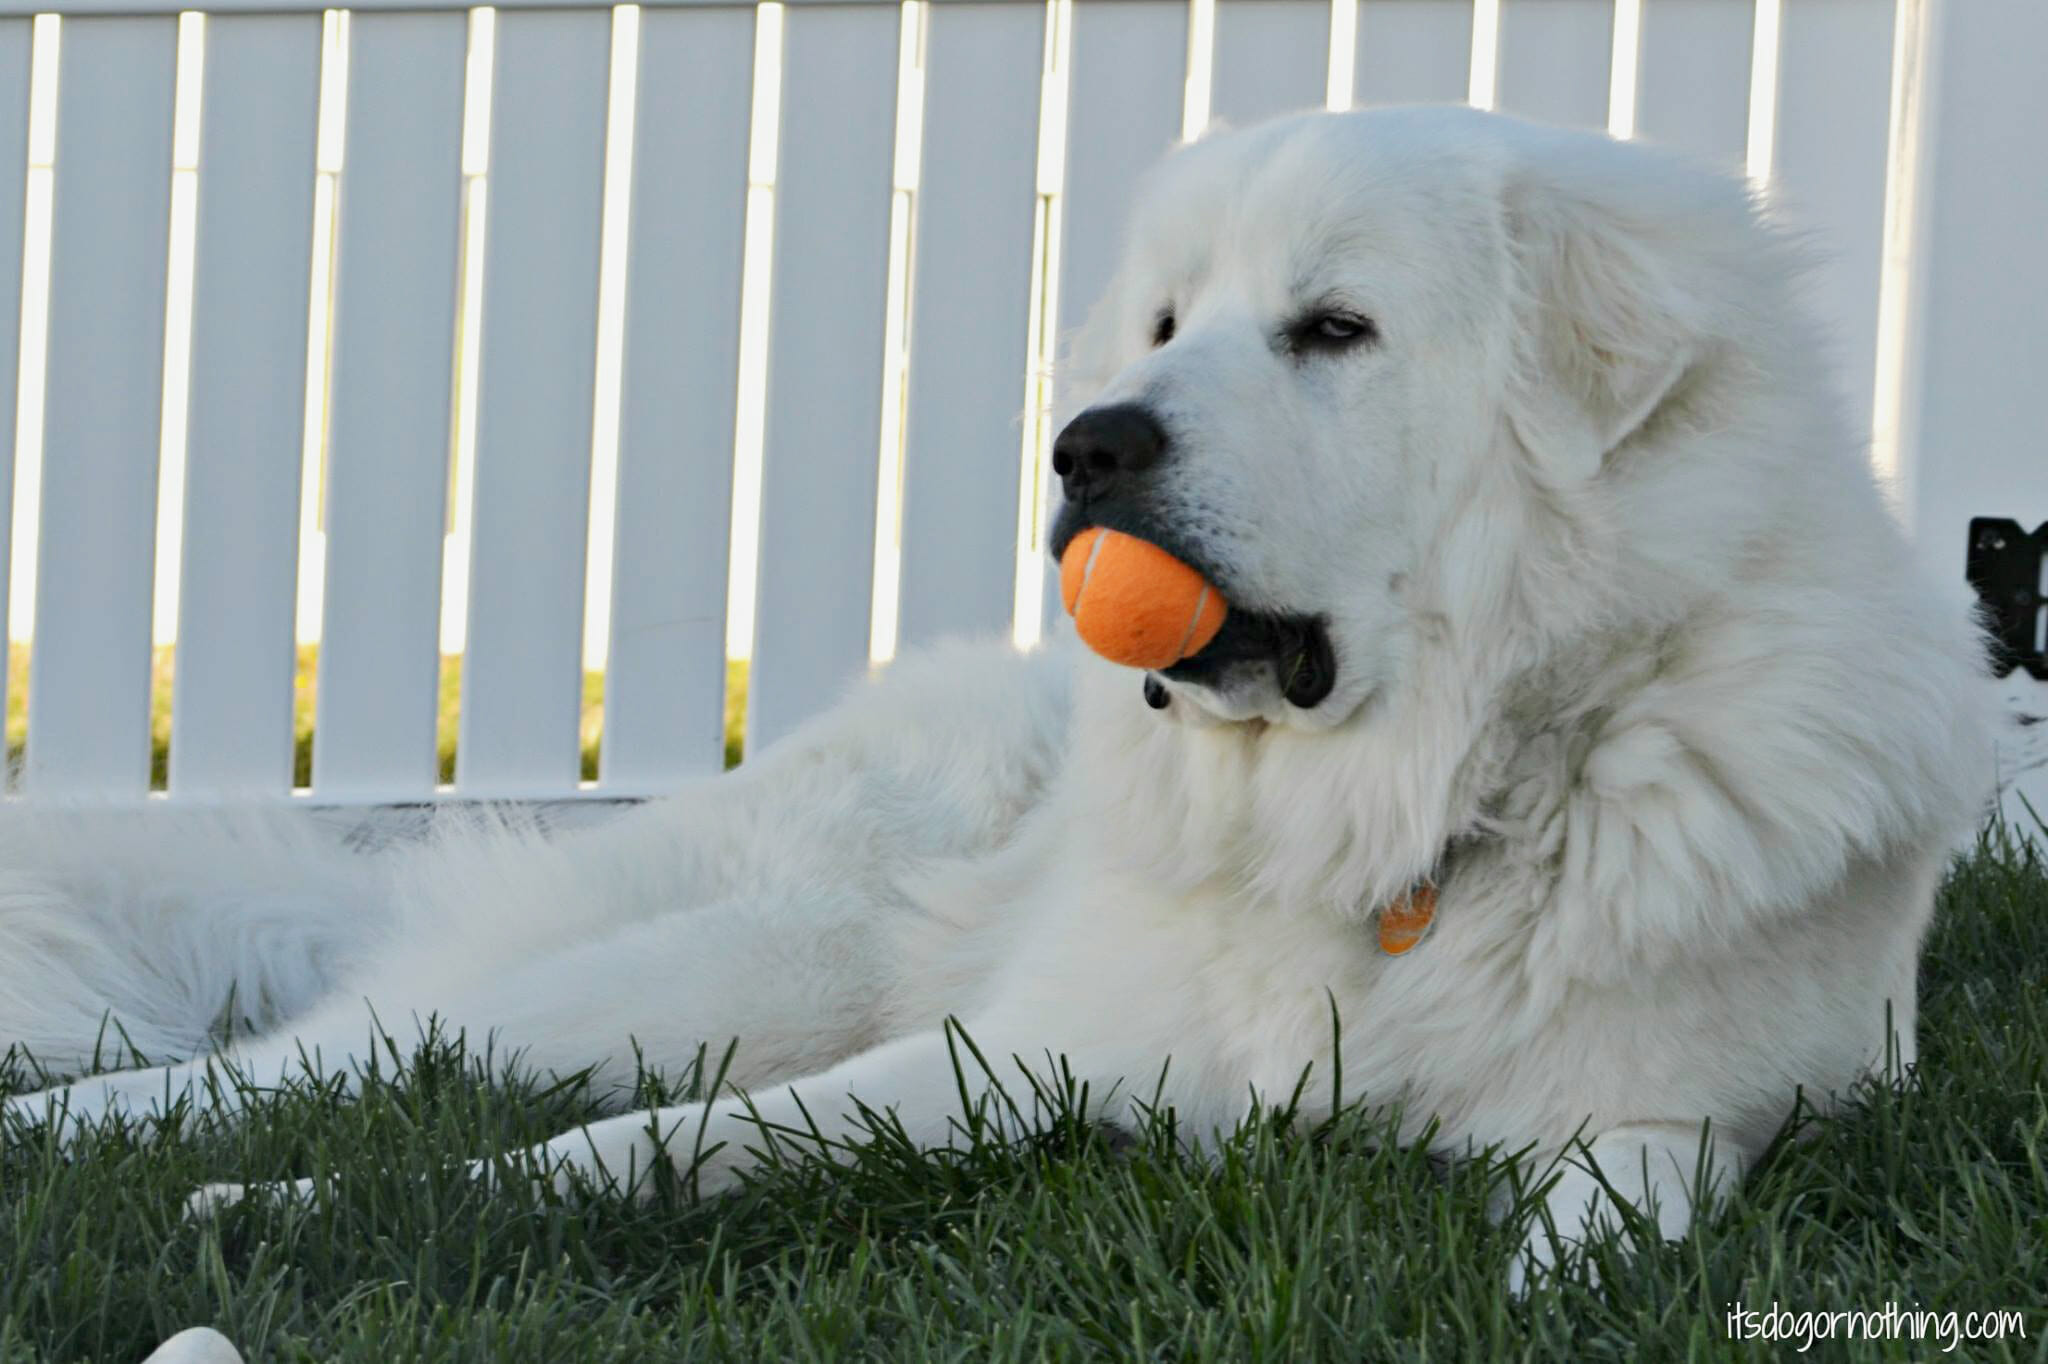 A Stuck Great Pyrenees